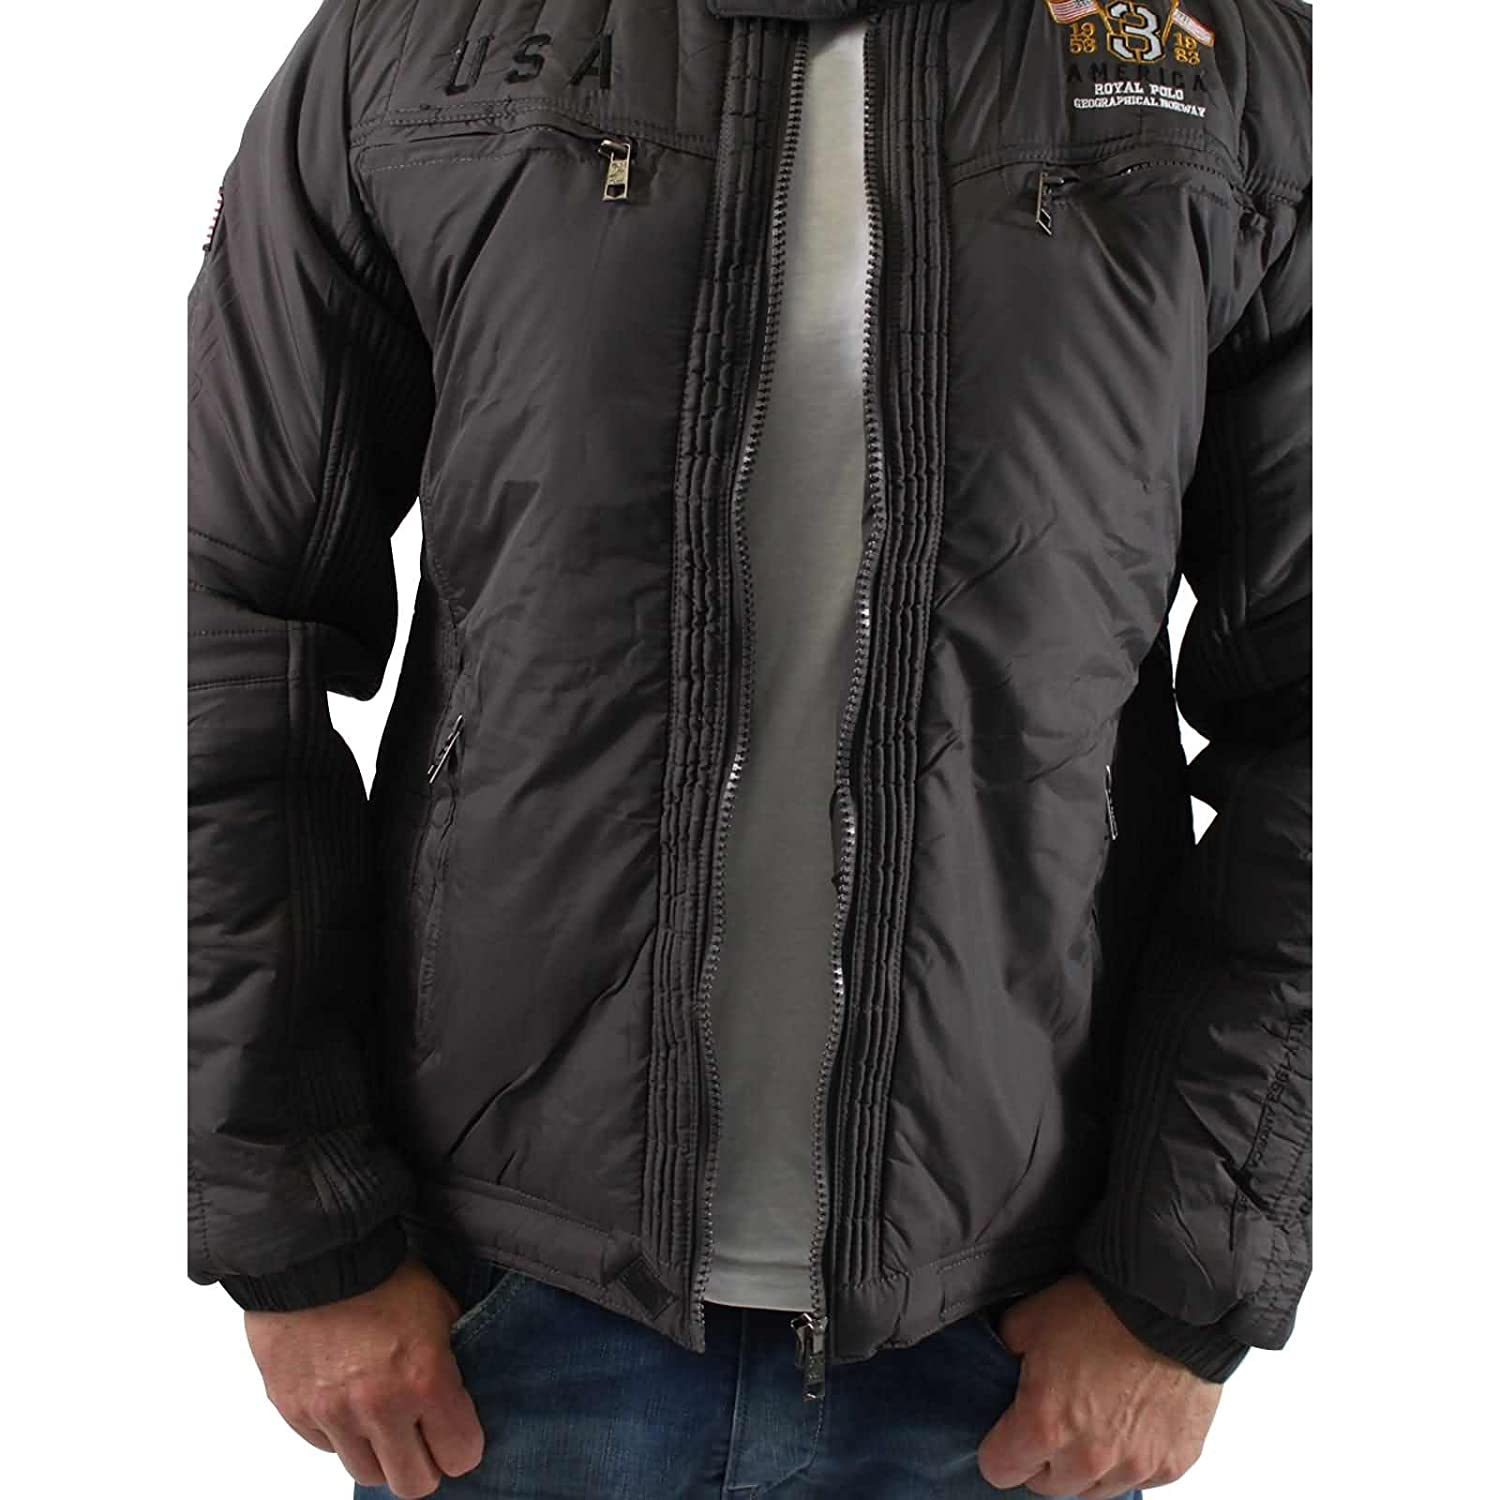 Geographical Norway Men's Plain Jacket